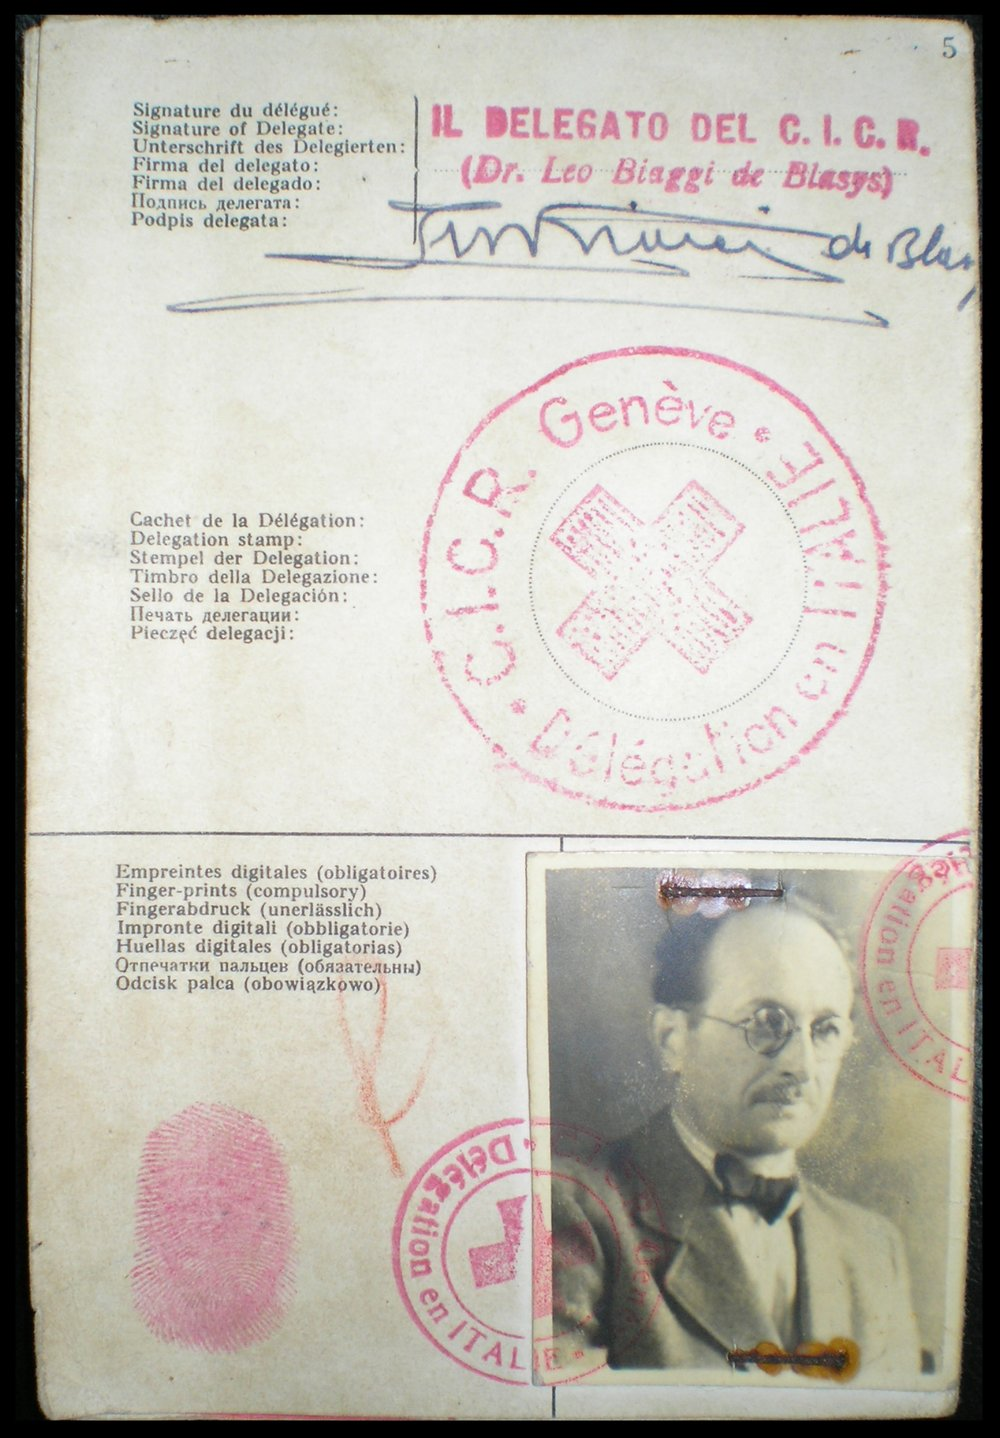 The Red Cross identity document Adolf Eichmann used to enter Argentina under the fake name Ricardo Klement in 1950, issued by the Italian delegation of the Red Cross of Geneva